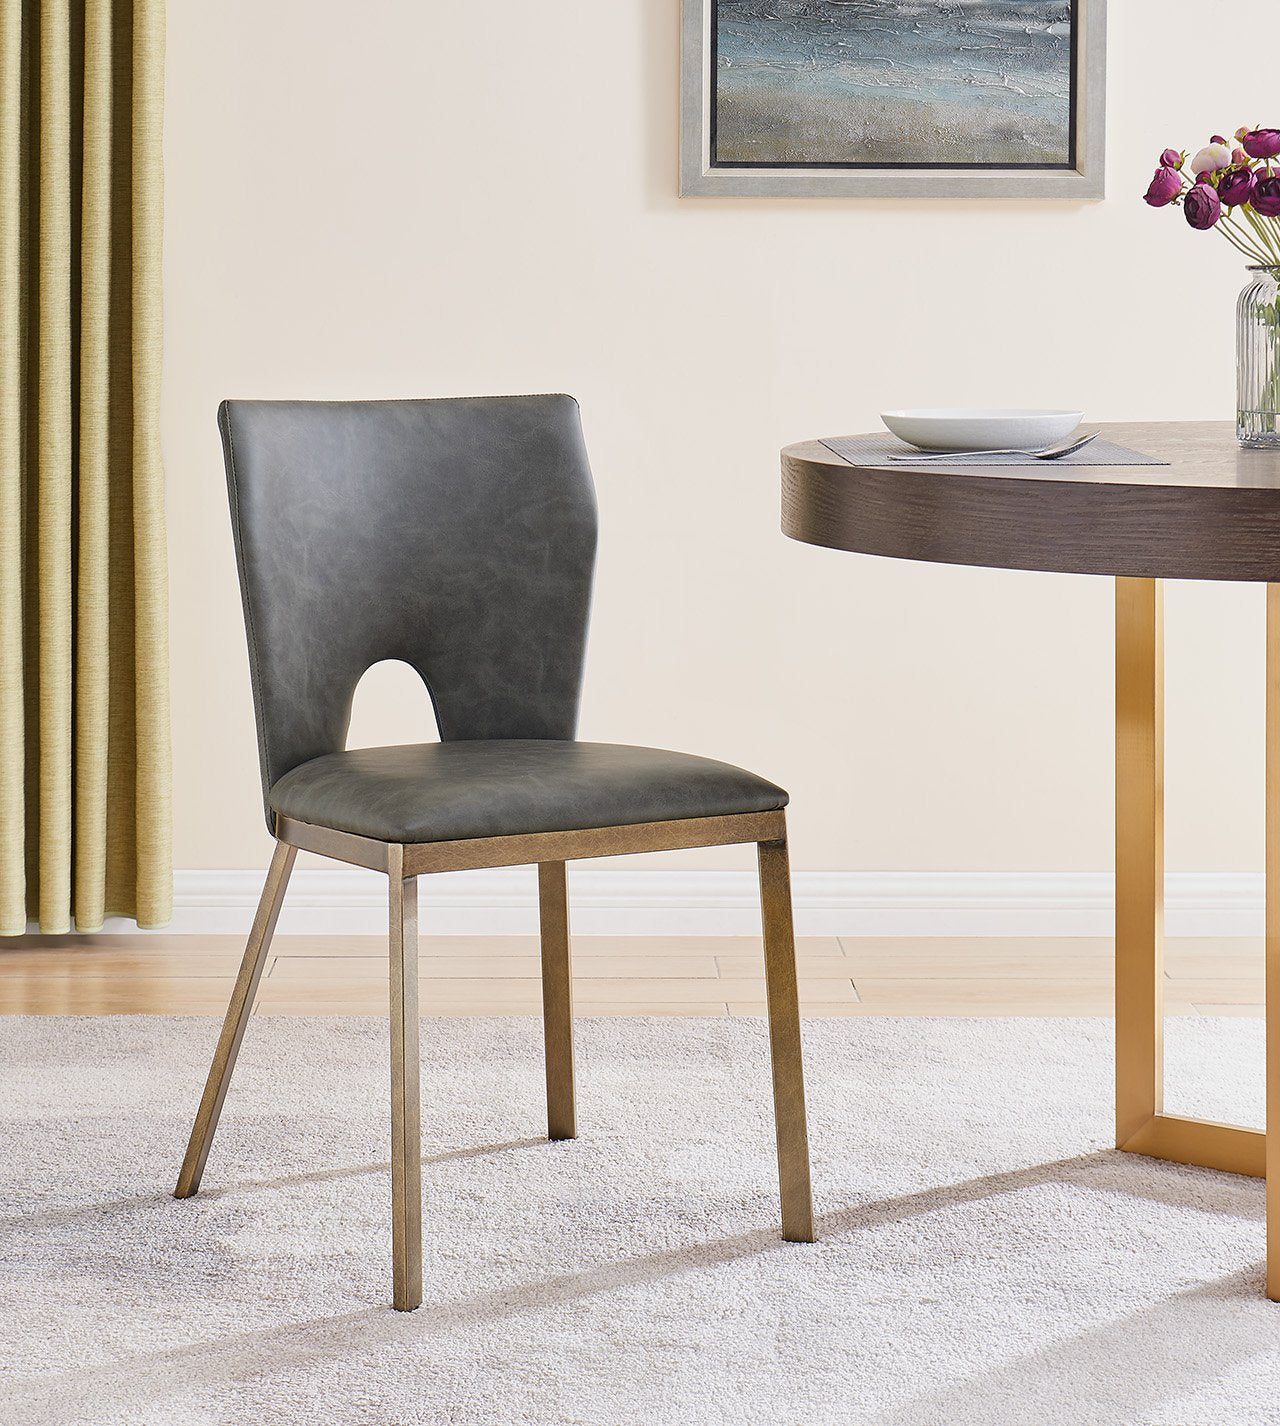 Ella Dining Chair - Brass/ Vintage Grey Faux Leather